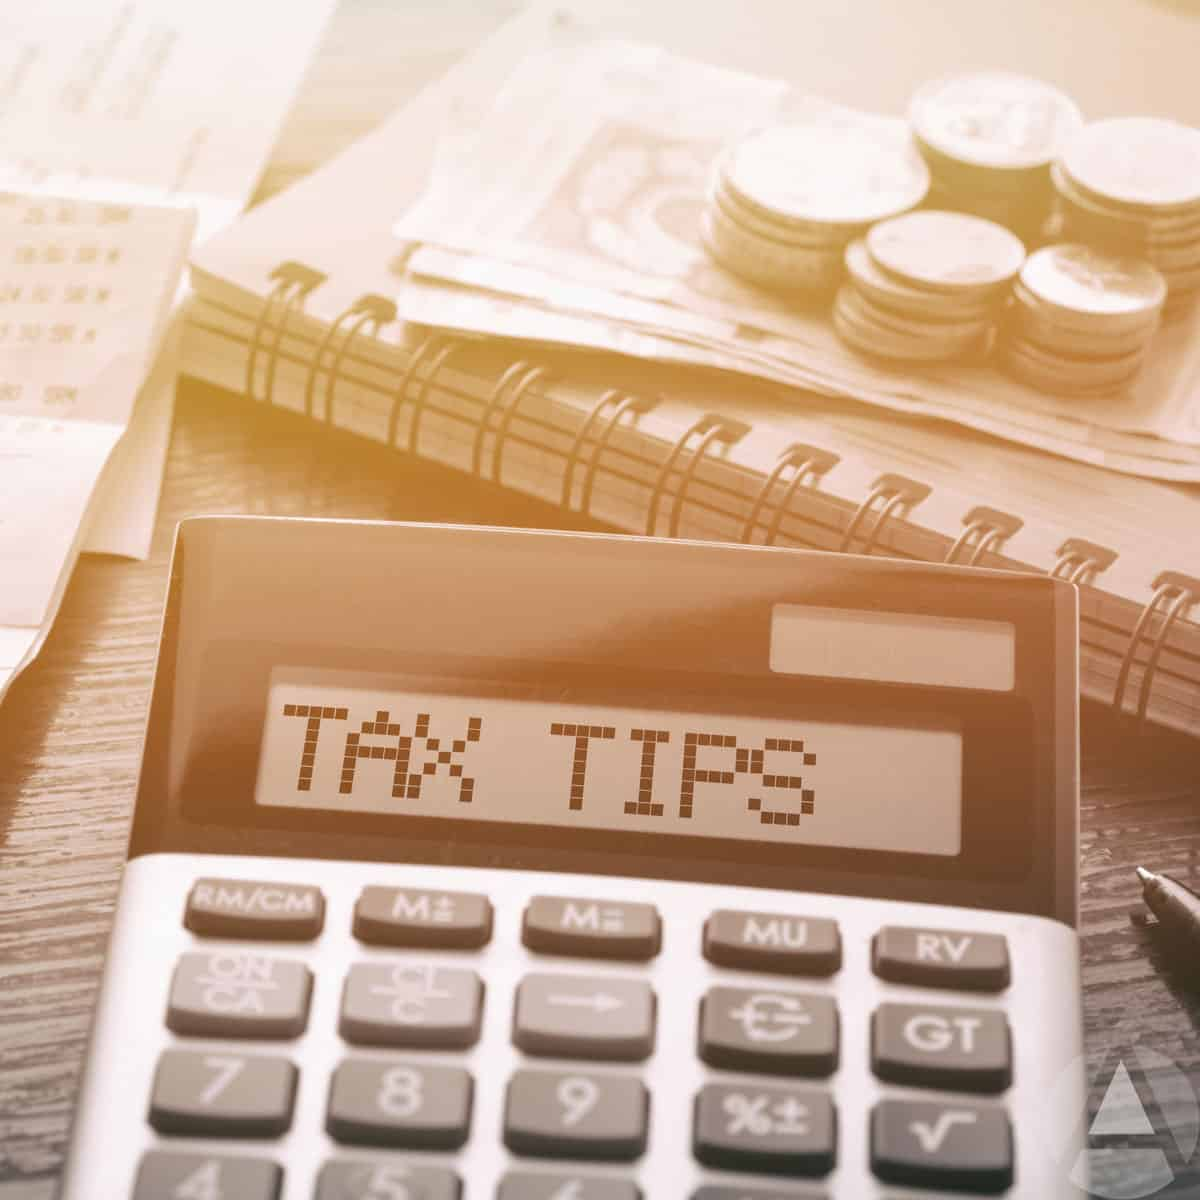 Calculator with money and a notebook to take notes on retirement planning tax strategies.